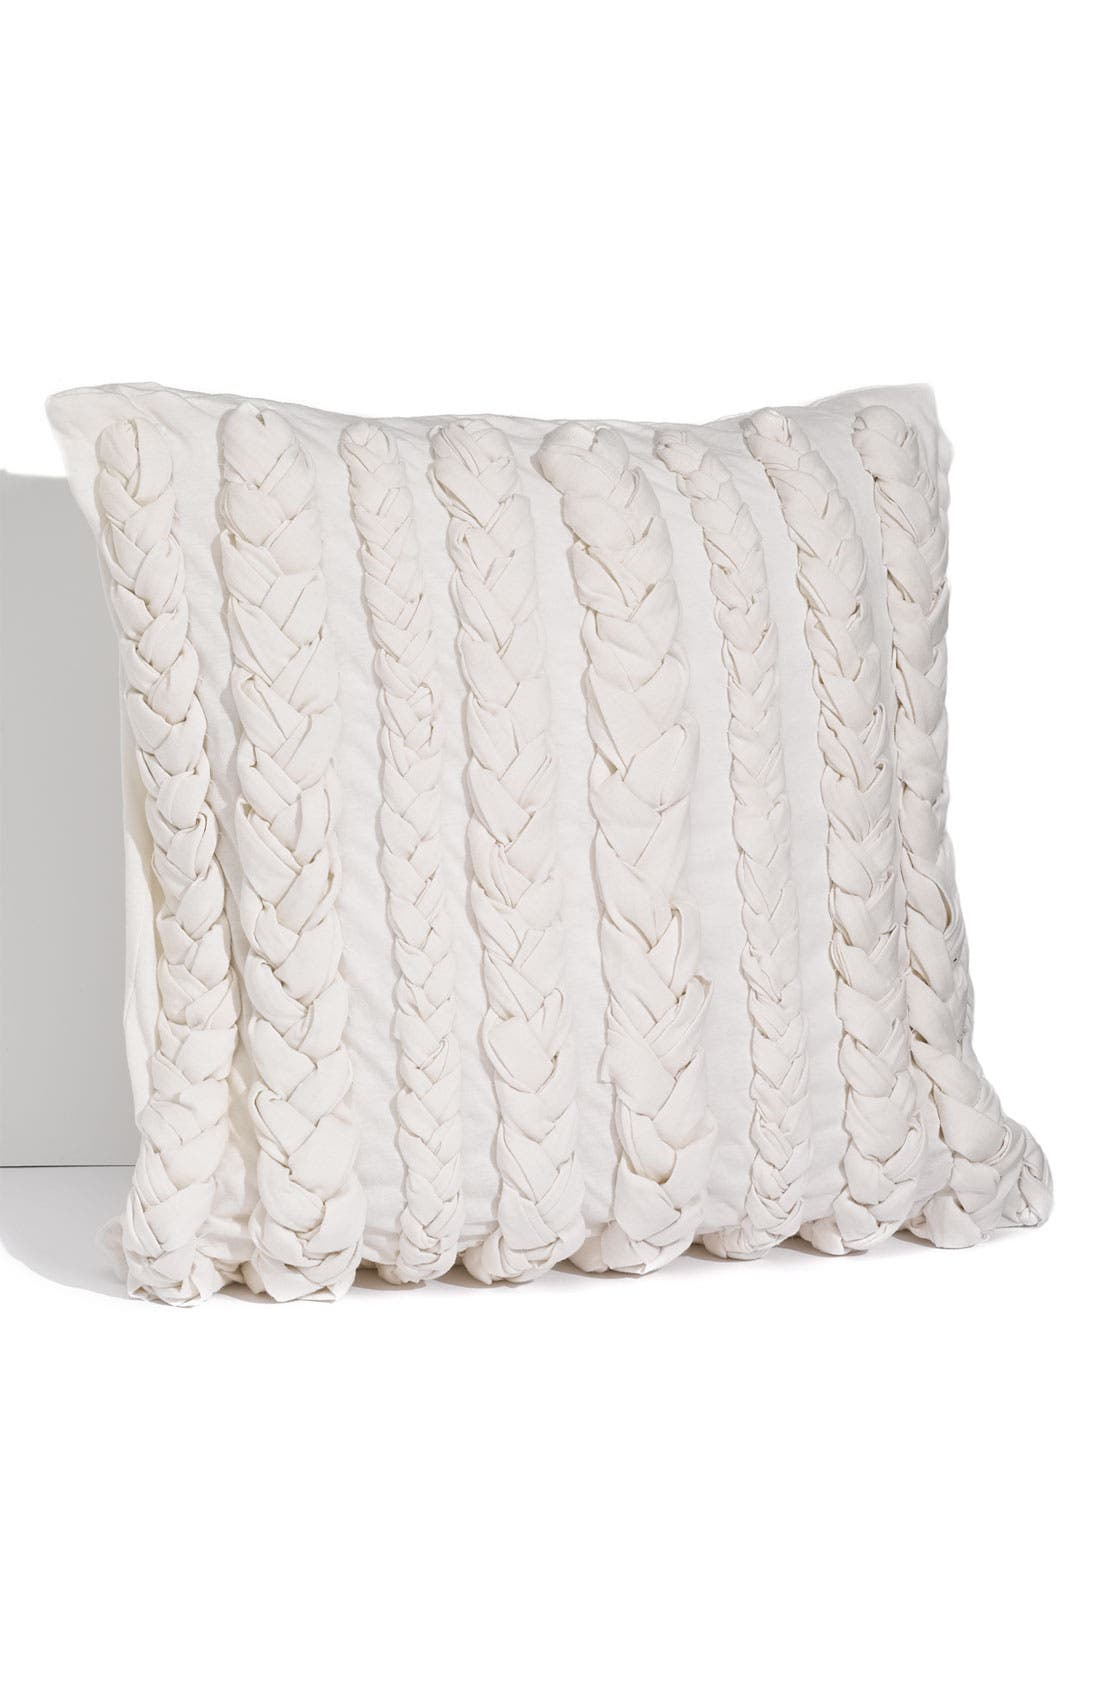 Alternate Image 1 Selected - Nordstrom at Home Braid Decorative Pillow